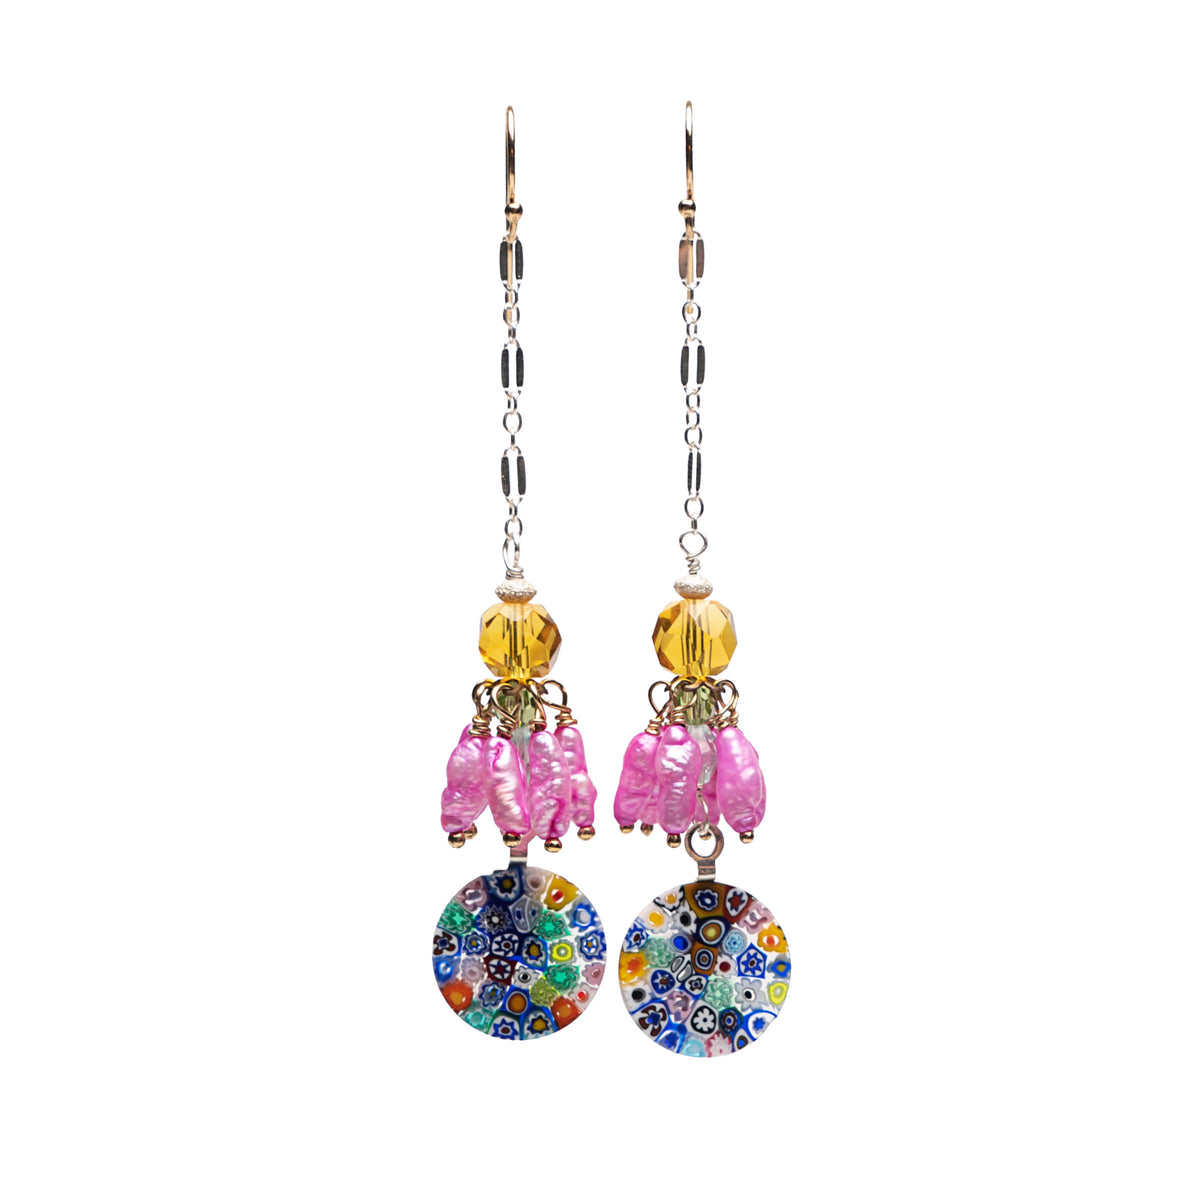 Wanderlust Murano Millefiori glass chandelier earring with pearls (Murano)